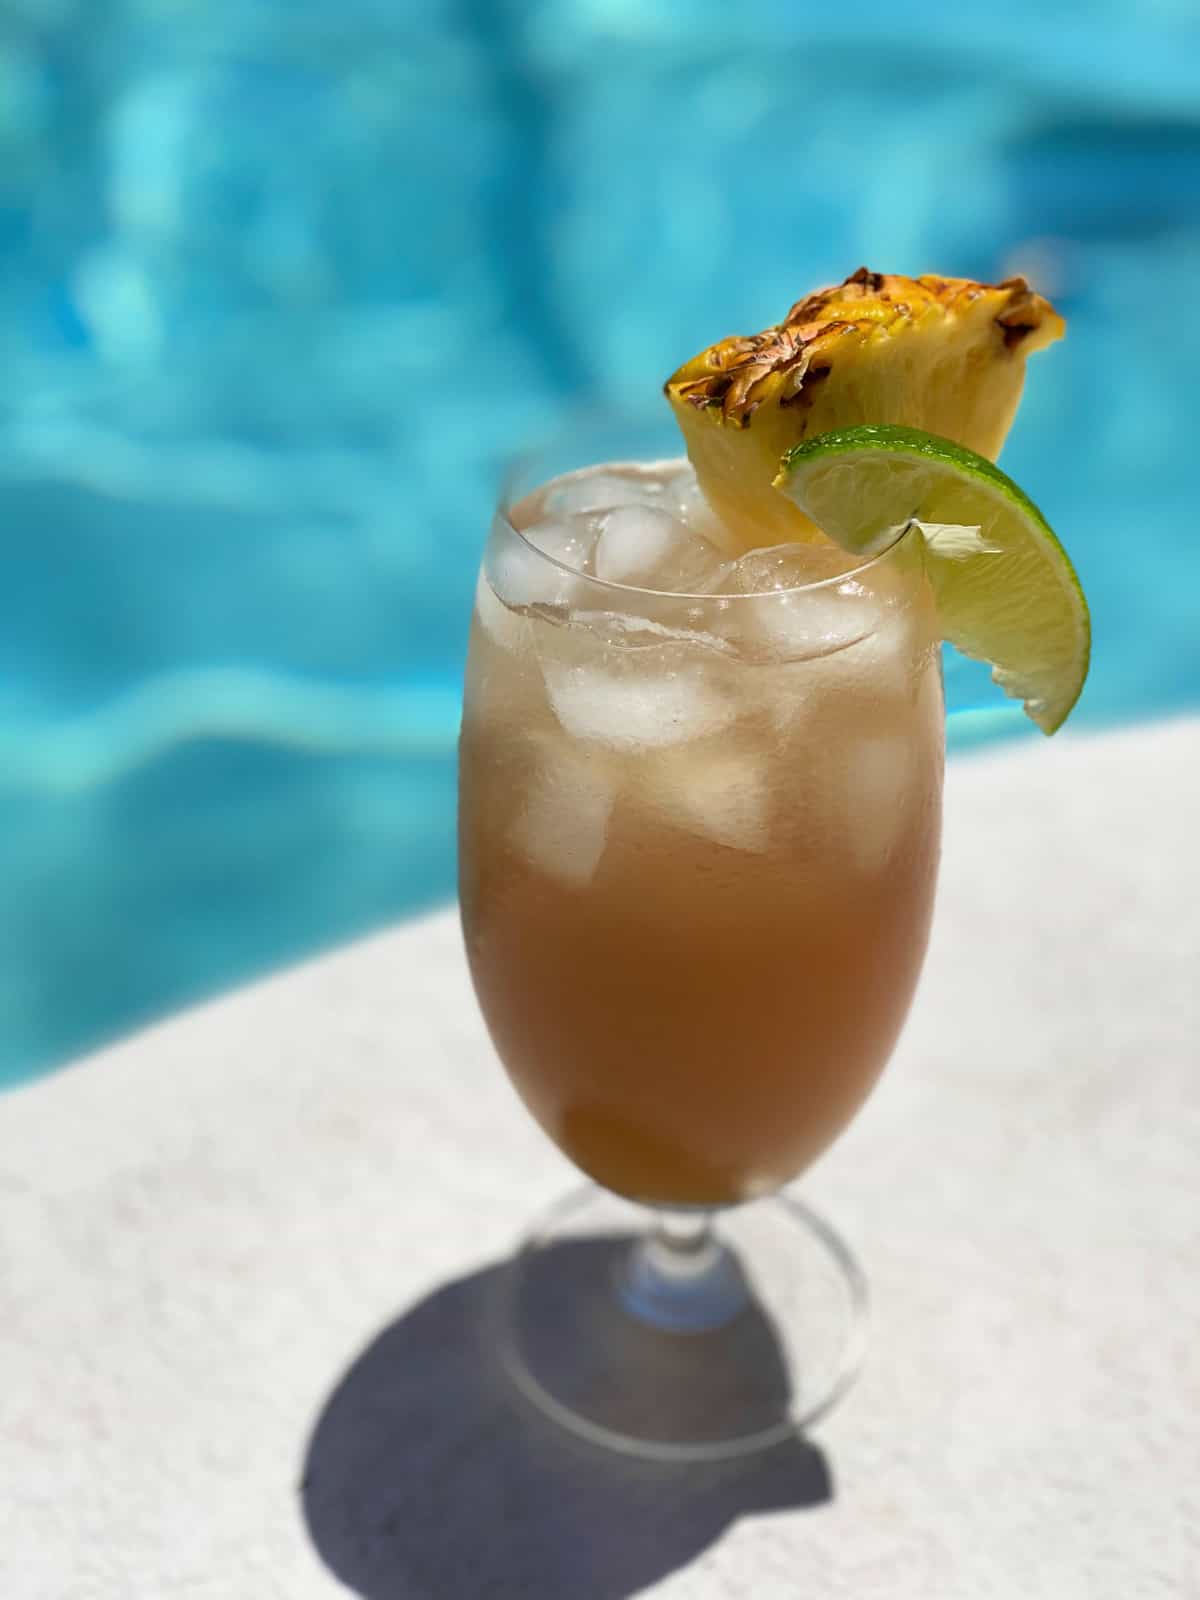 One glass of a cocktail next to a swimming pool garnished with a pineapple and lime.